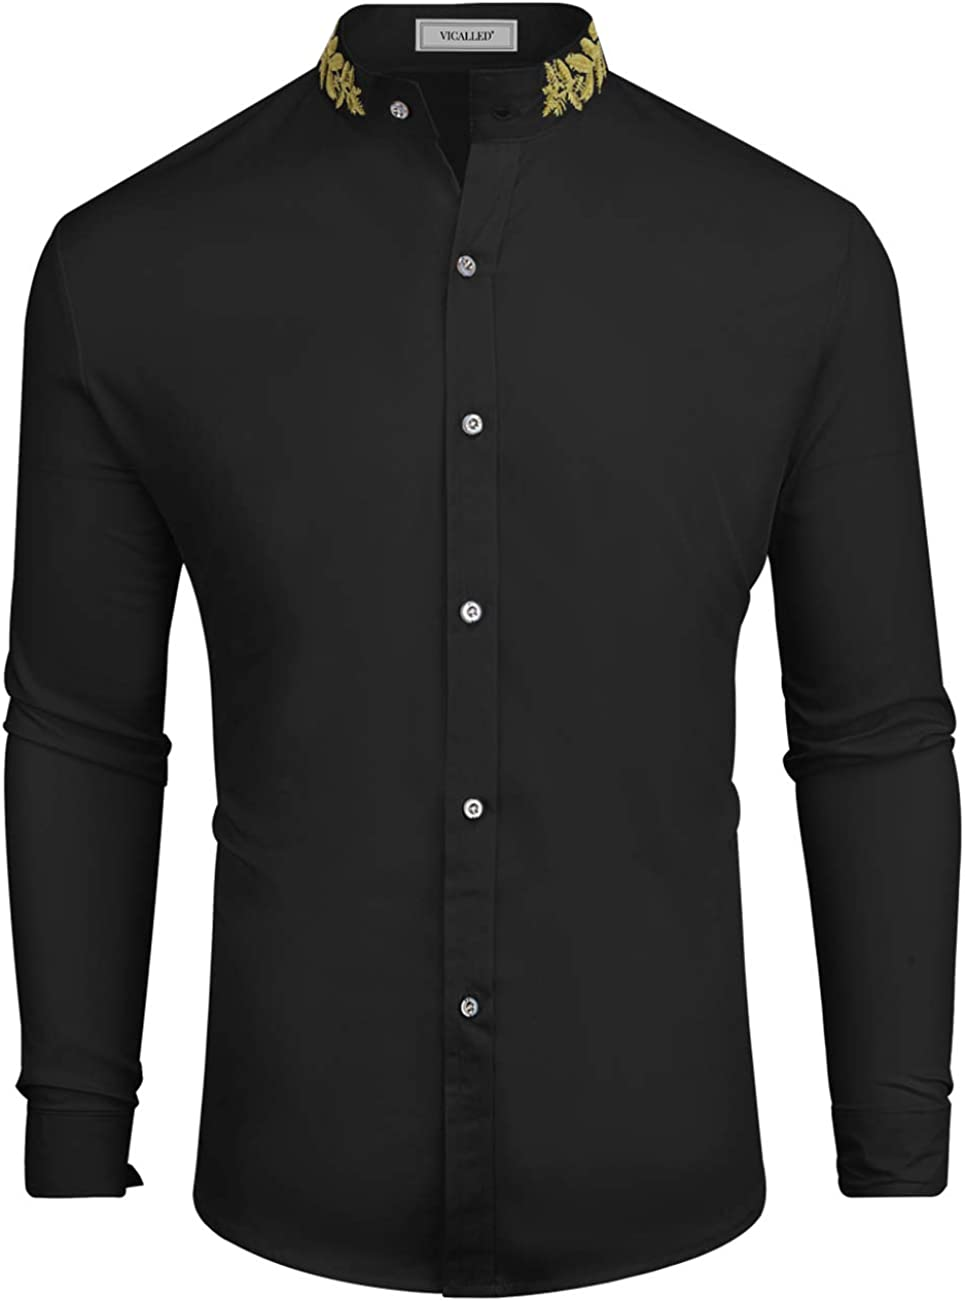 VICALLED Men's Solid Color Dress Shirt Slim Fit Long Sleeve Tuxedo Button Down Collar Shirts